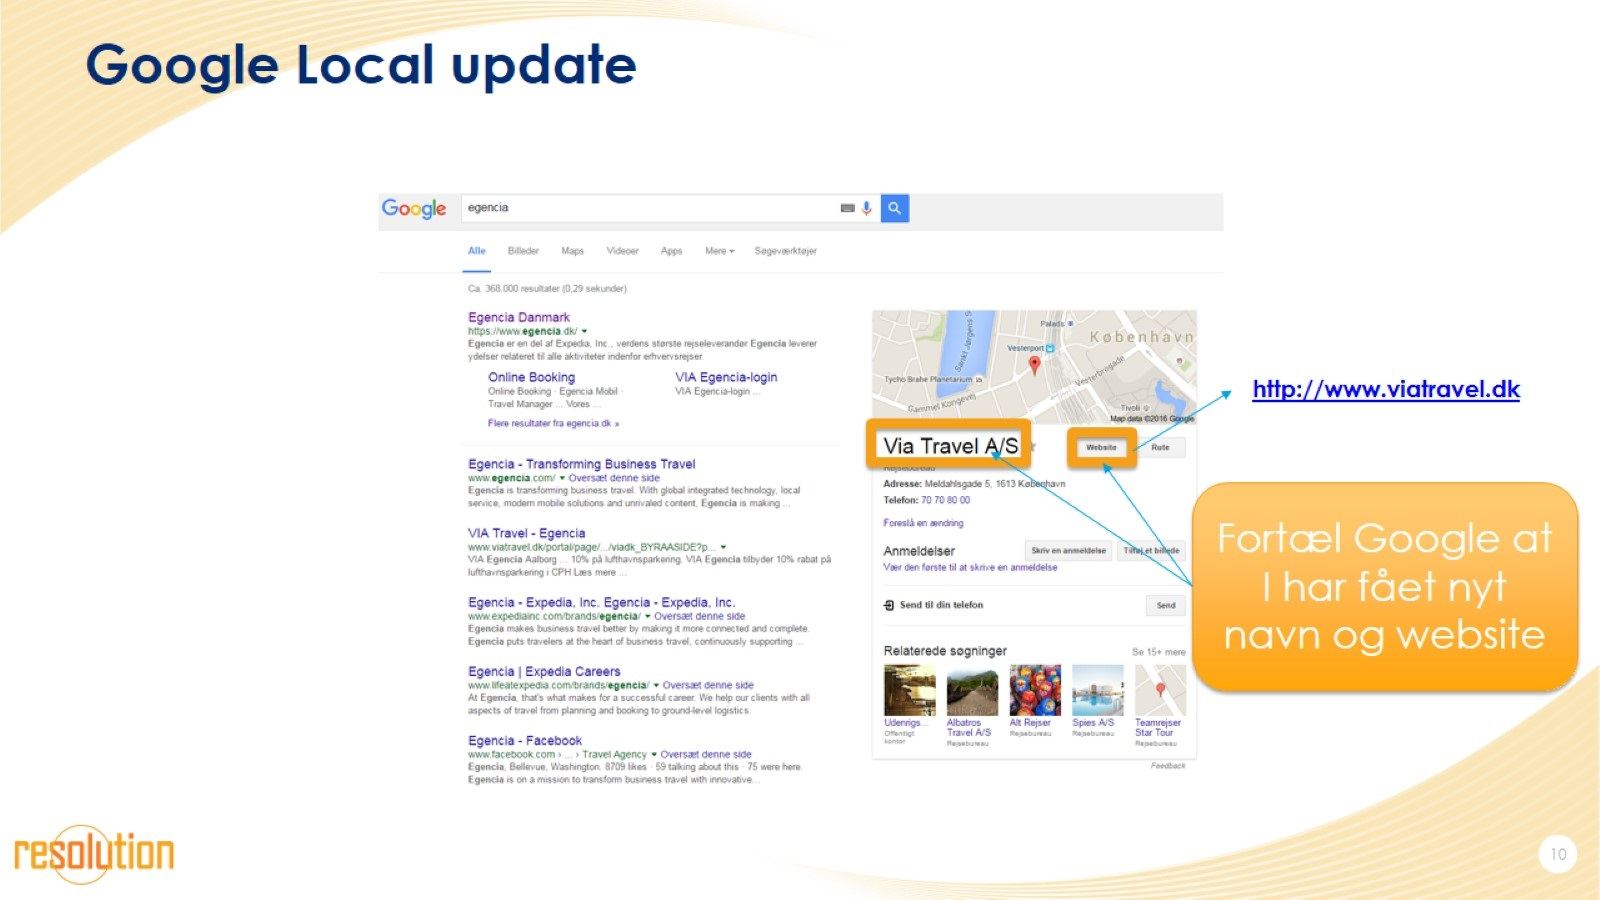 Google Local update